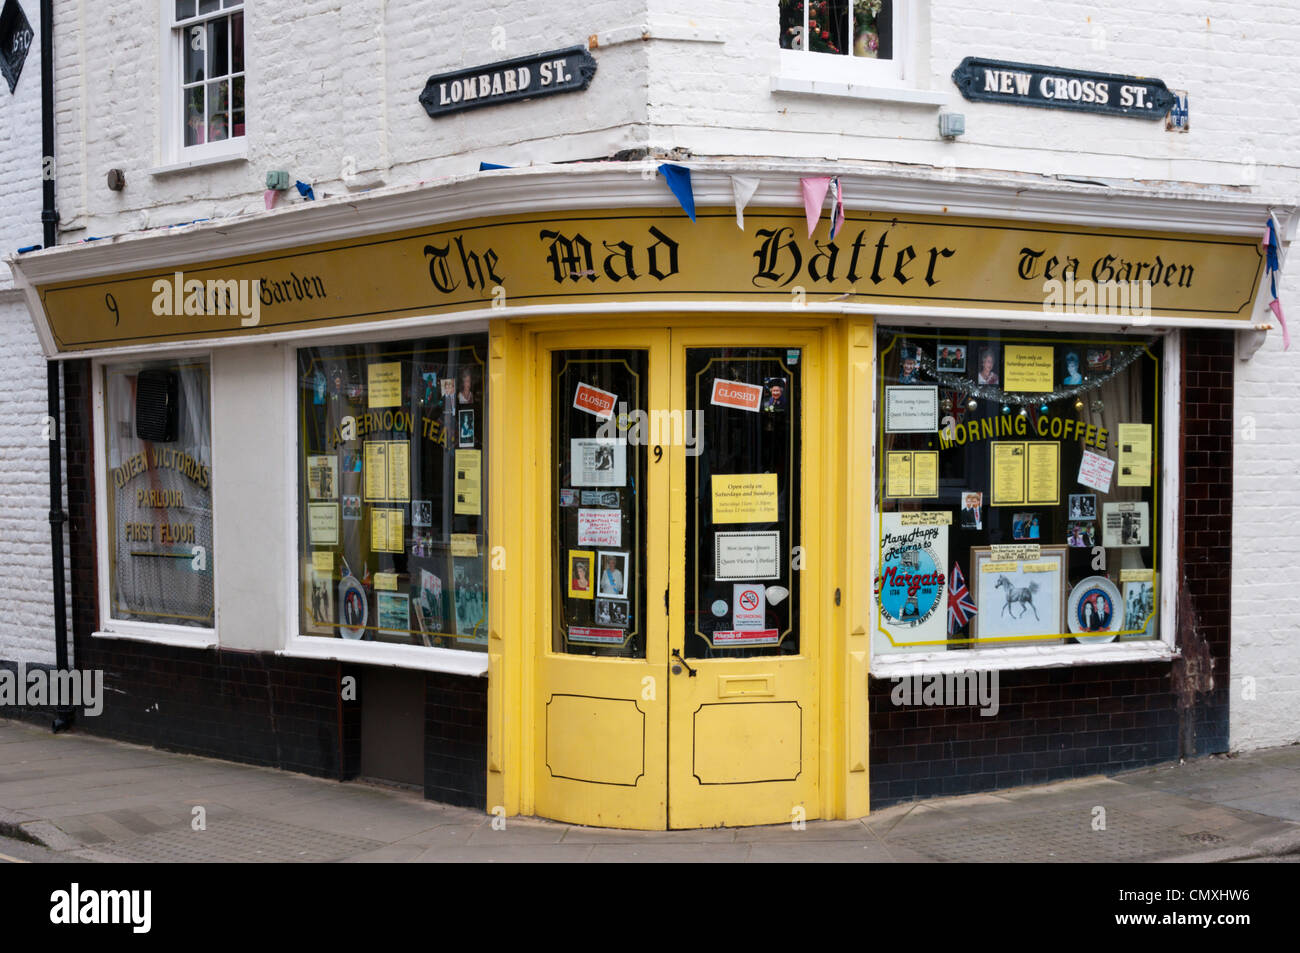 The Mad Hatter Tea Garden on the corner of Lombard Street and New Cross Street in Margate, Kent. - Stock Image